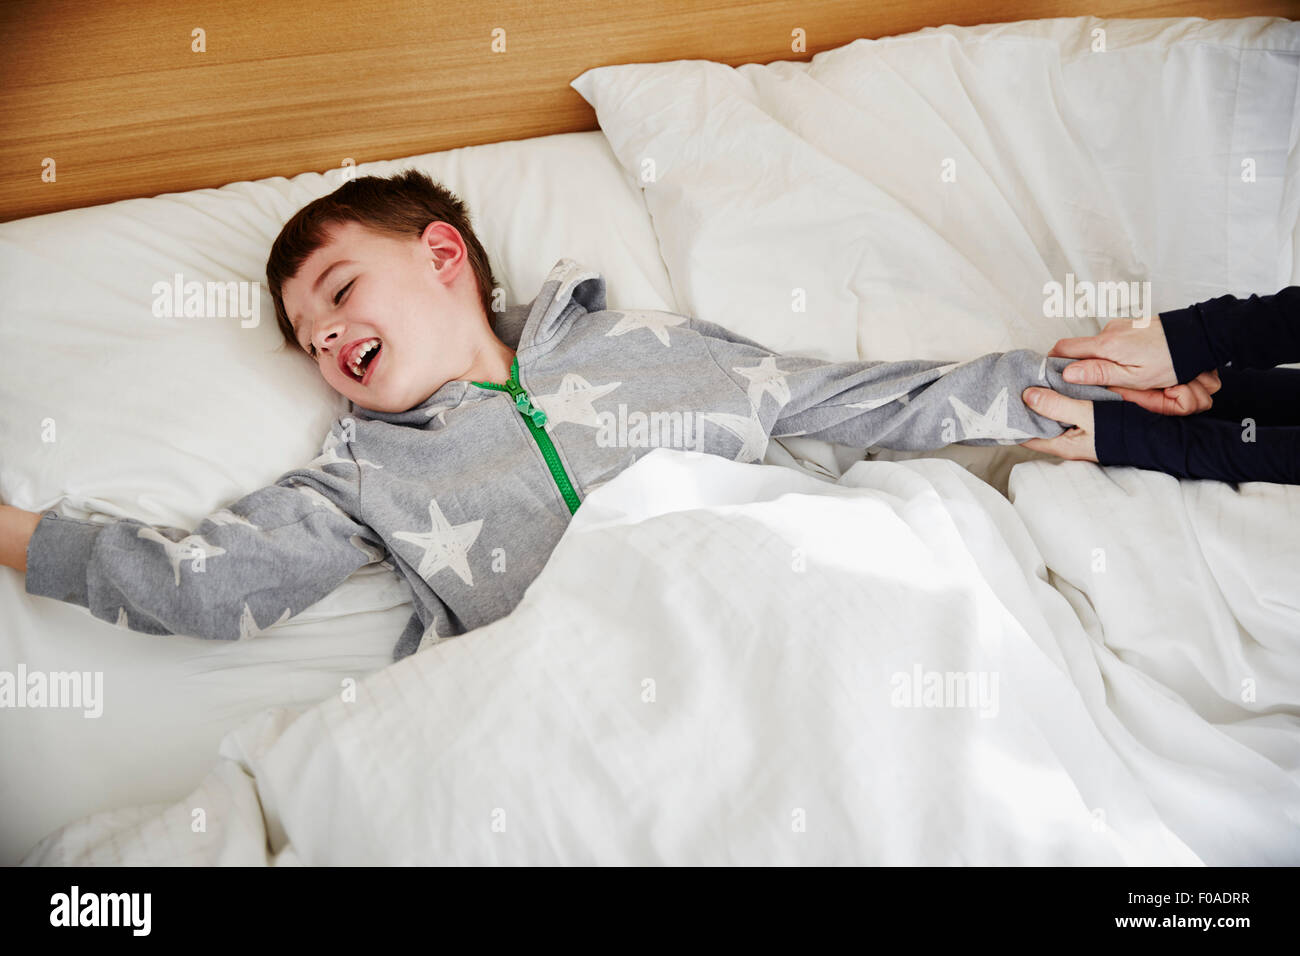 Mother pulling son out of bed - Stock Image